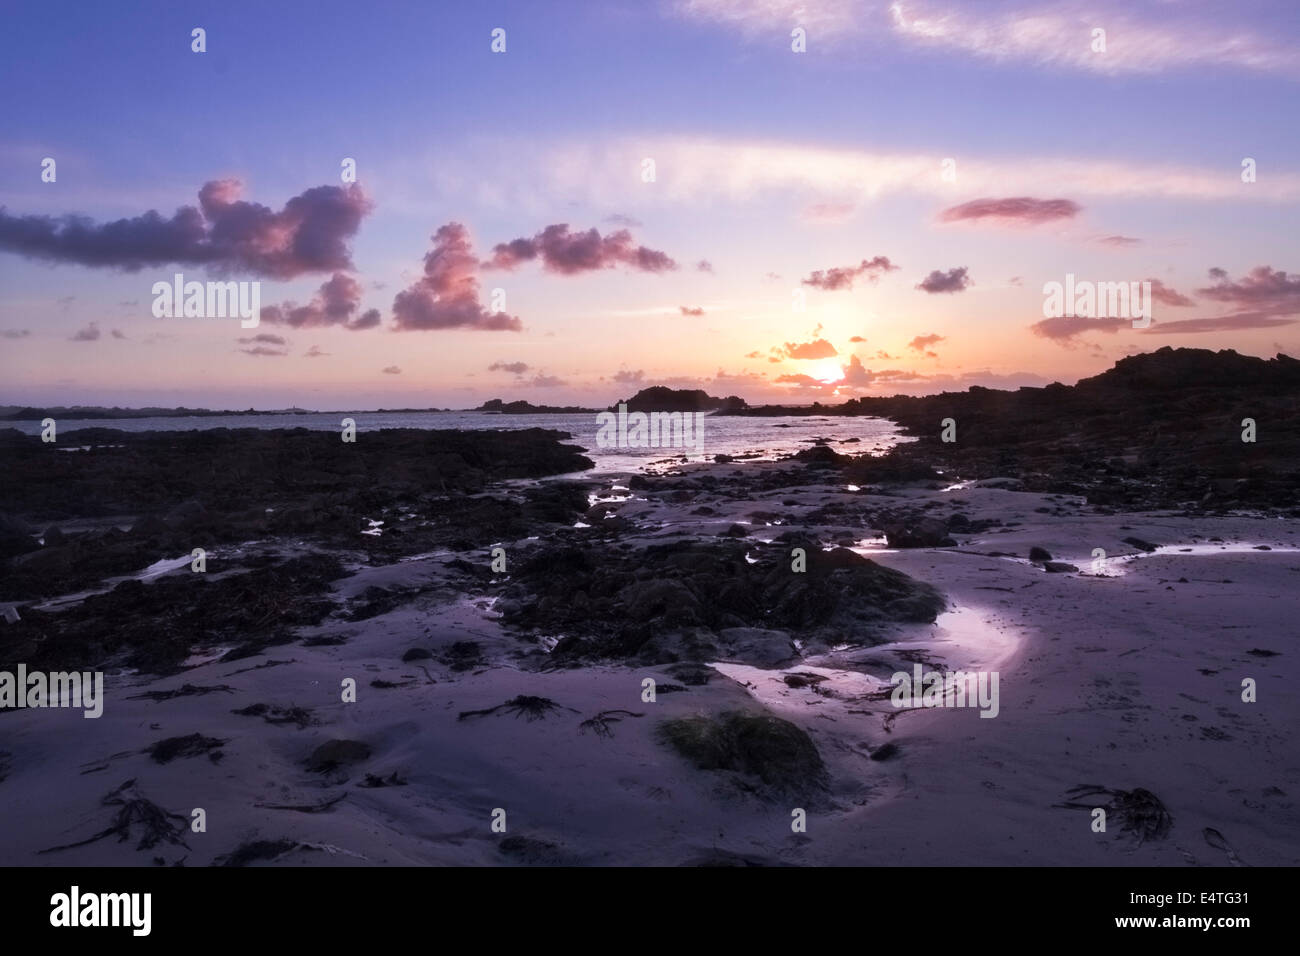 Sunset on guernsey english channel islands UK - Stock Image